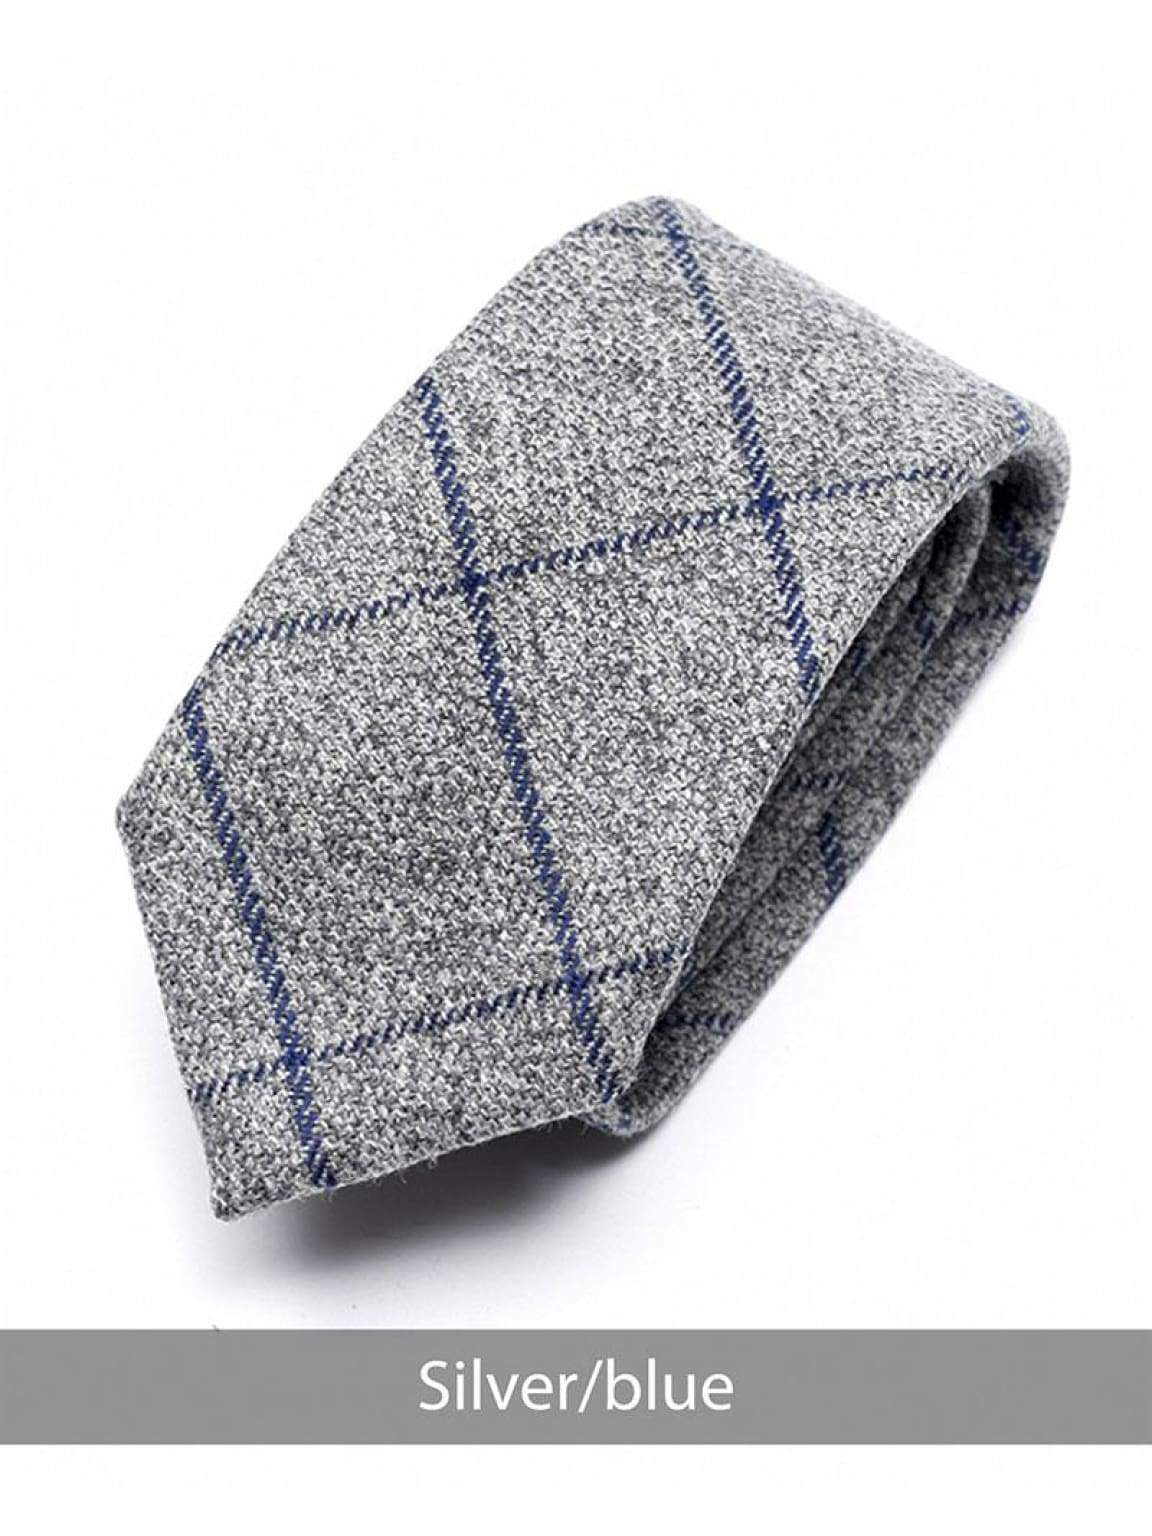 Heirloom Silver Mens Blue Checked Tie - Accessories